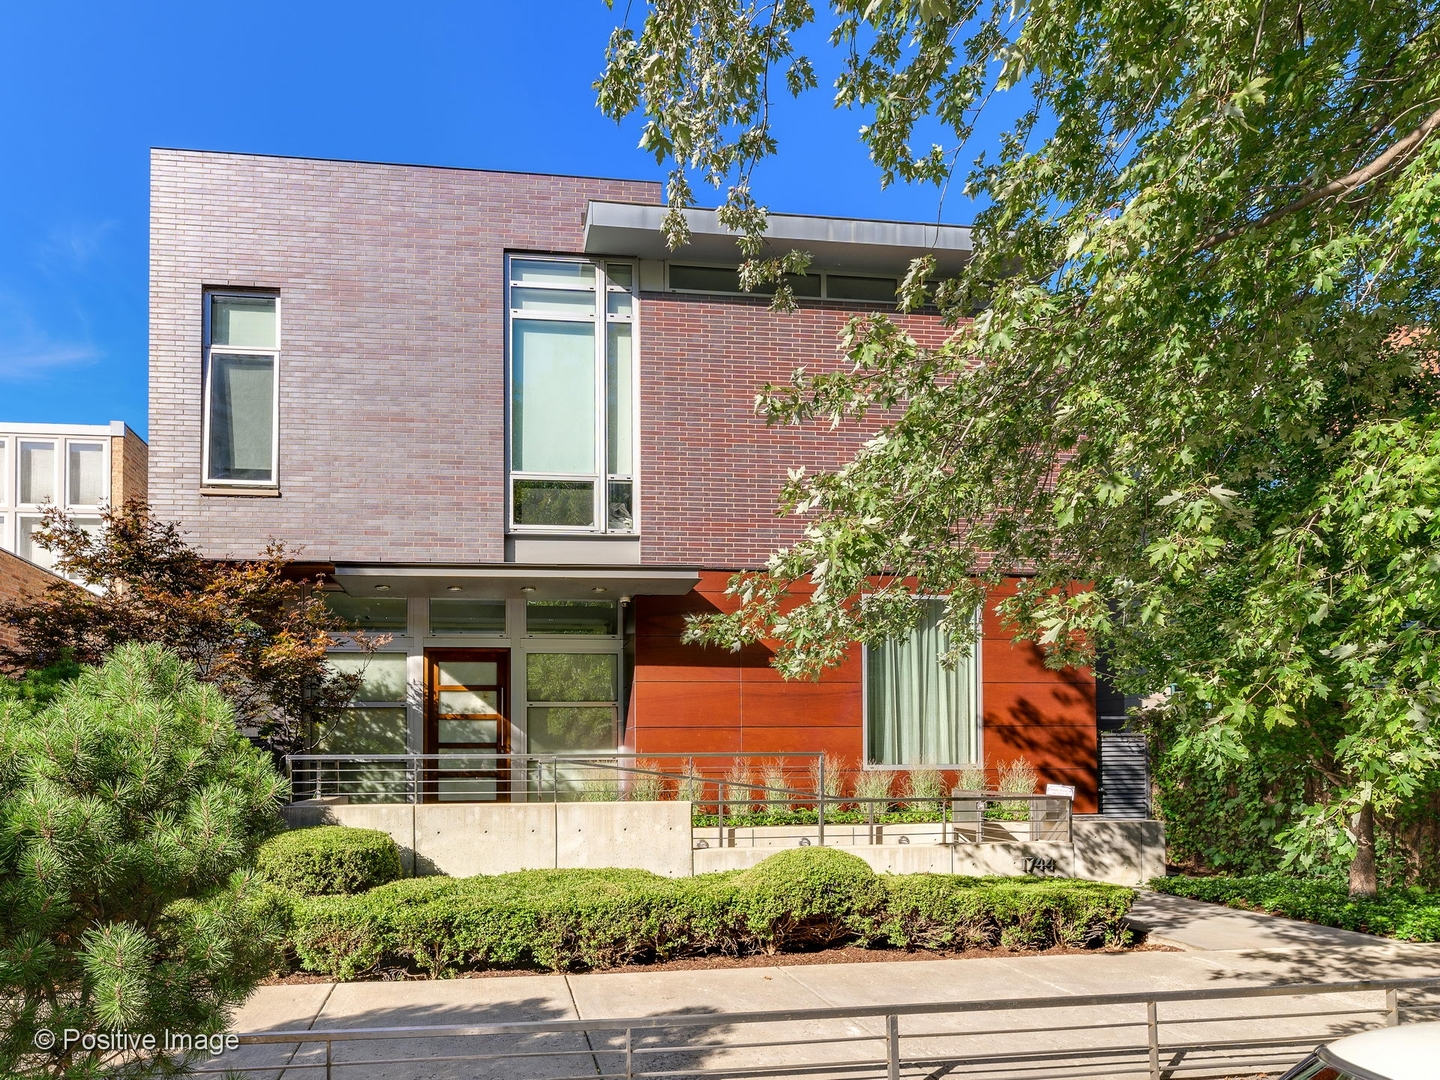 6 House in Logan Square